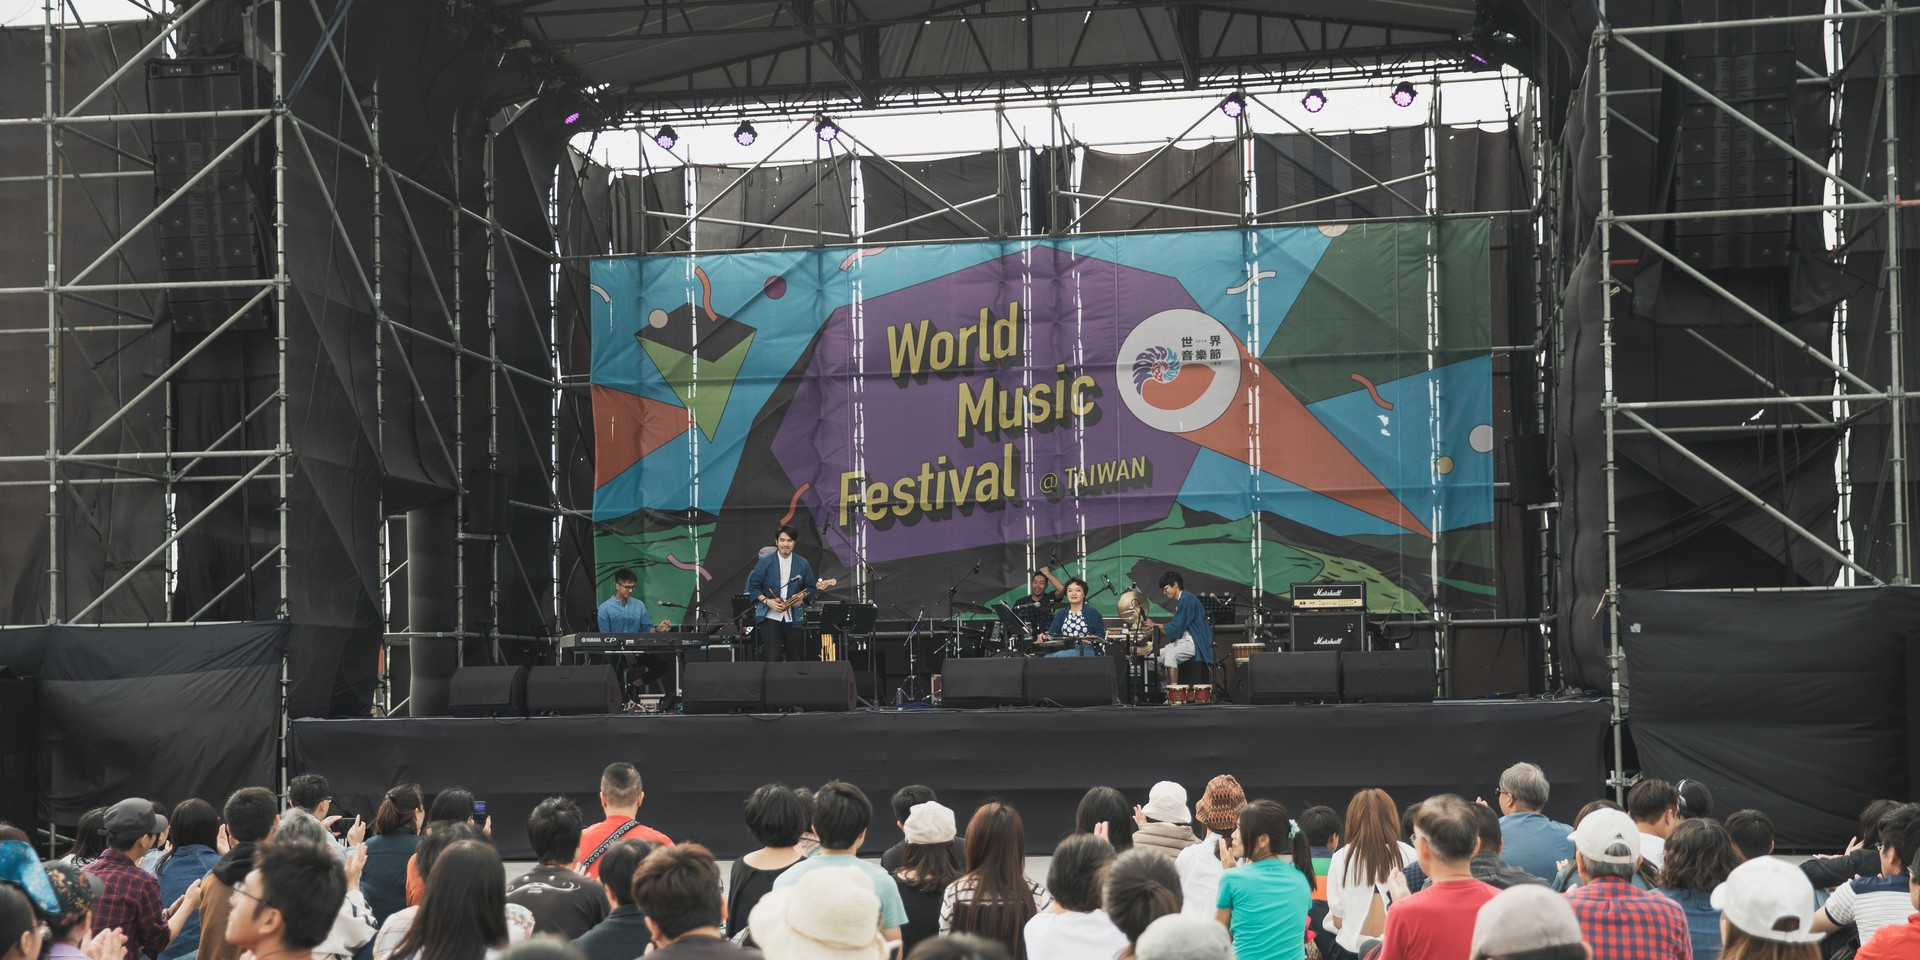 Don't Miss These 7 Acts From World Music Festival 2019